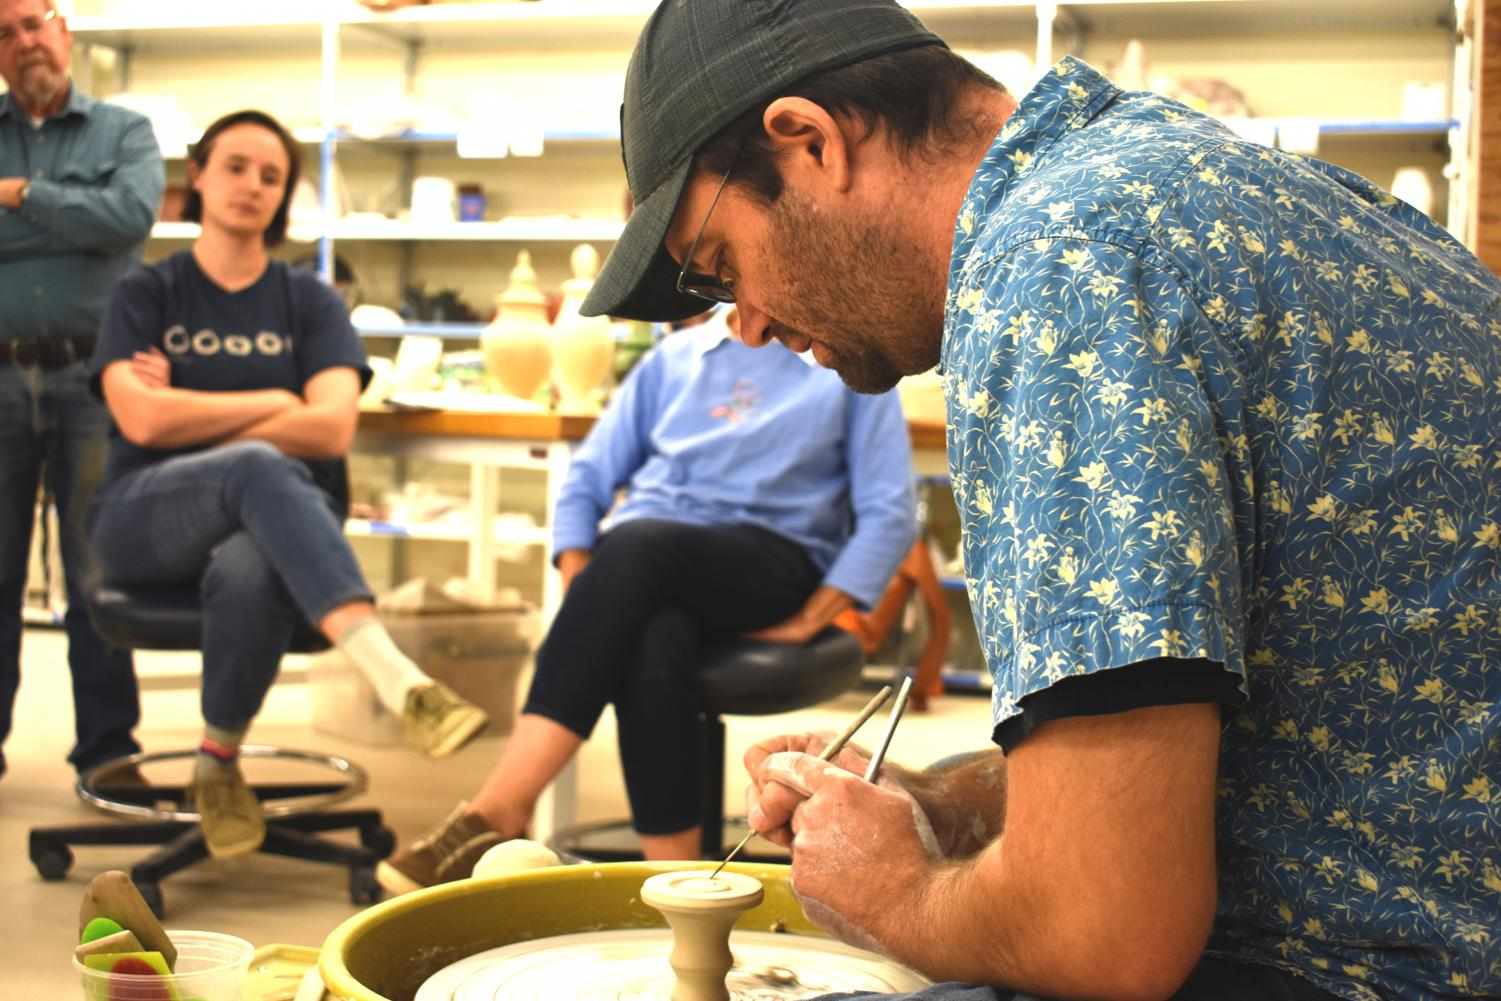 Jason Piccoli gives a demonstration of his technique on a pottery wheel to the students of AACC